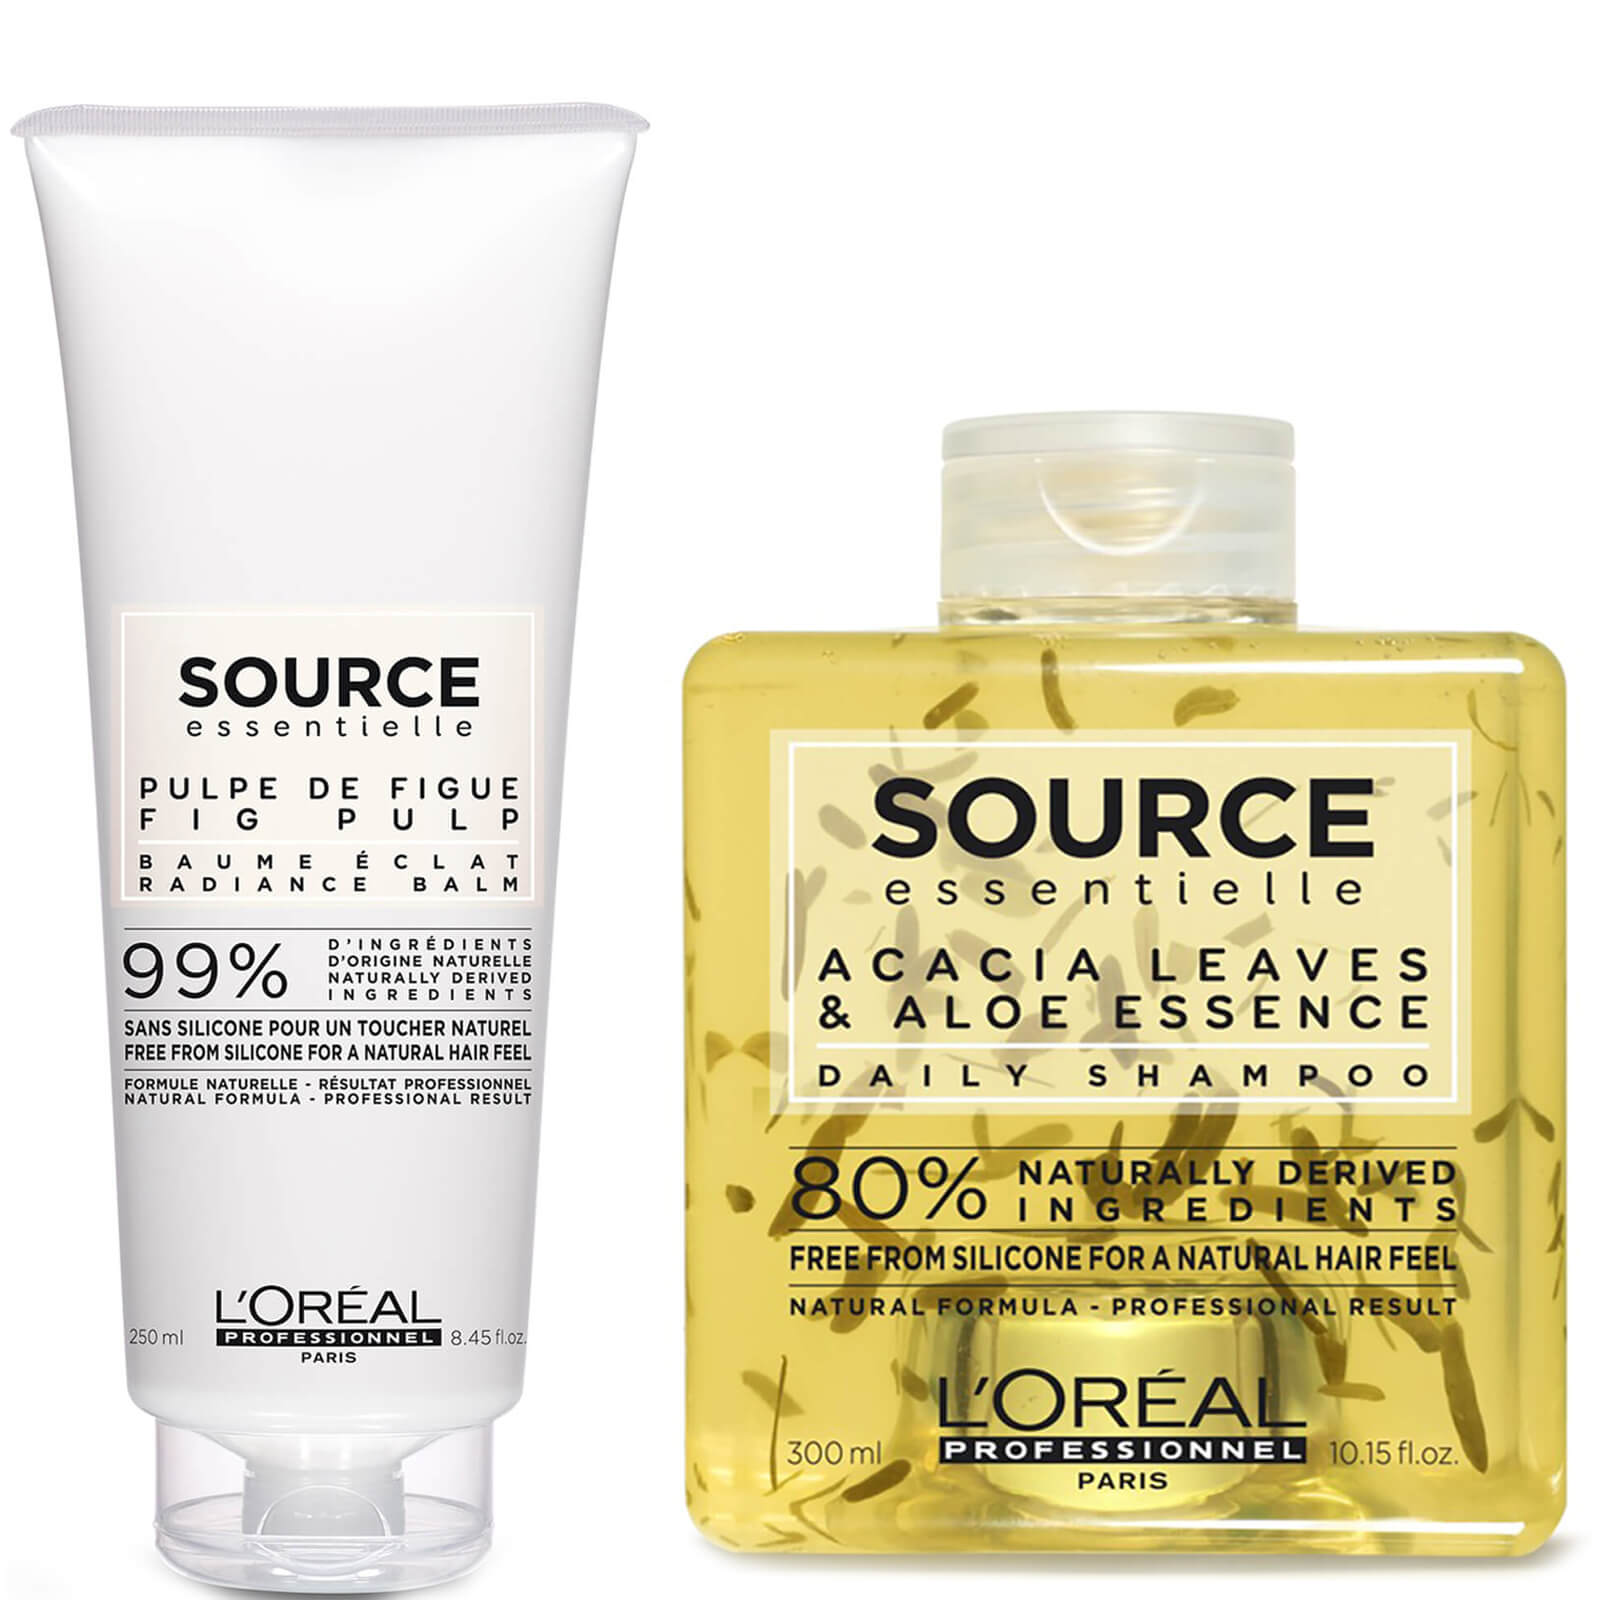 L Oréal Professionnel Source Essentielle Daily Shampoo and Hair Balm Duo  68b21becbbc